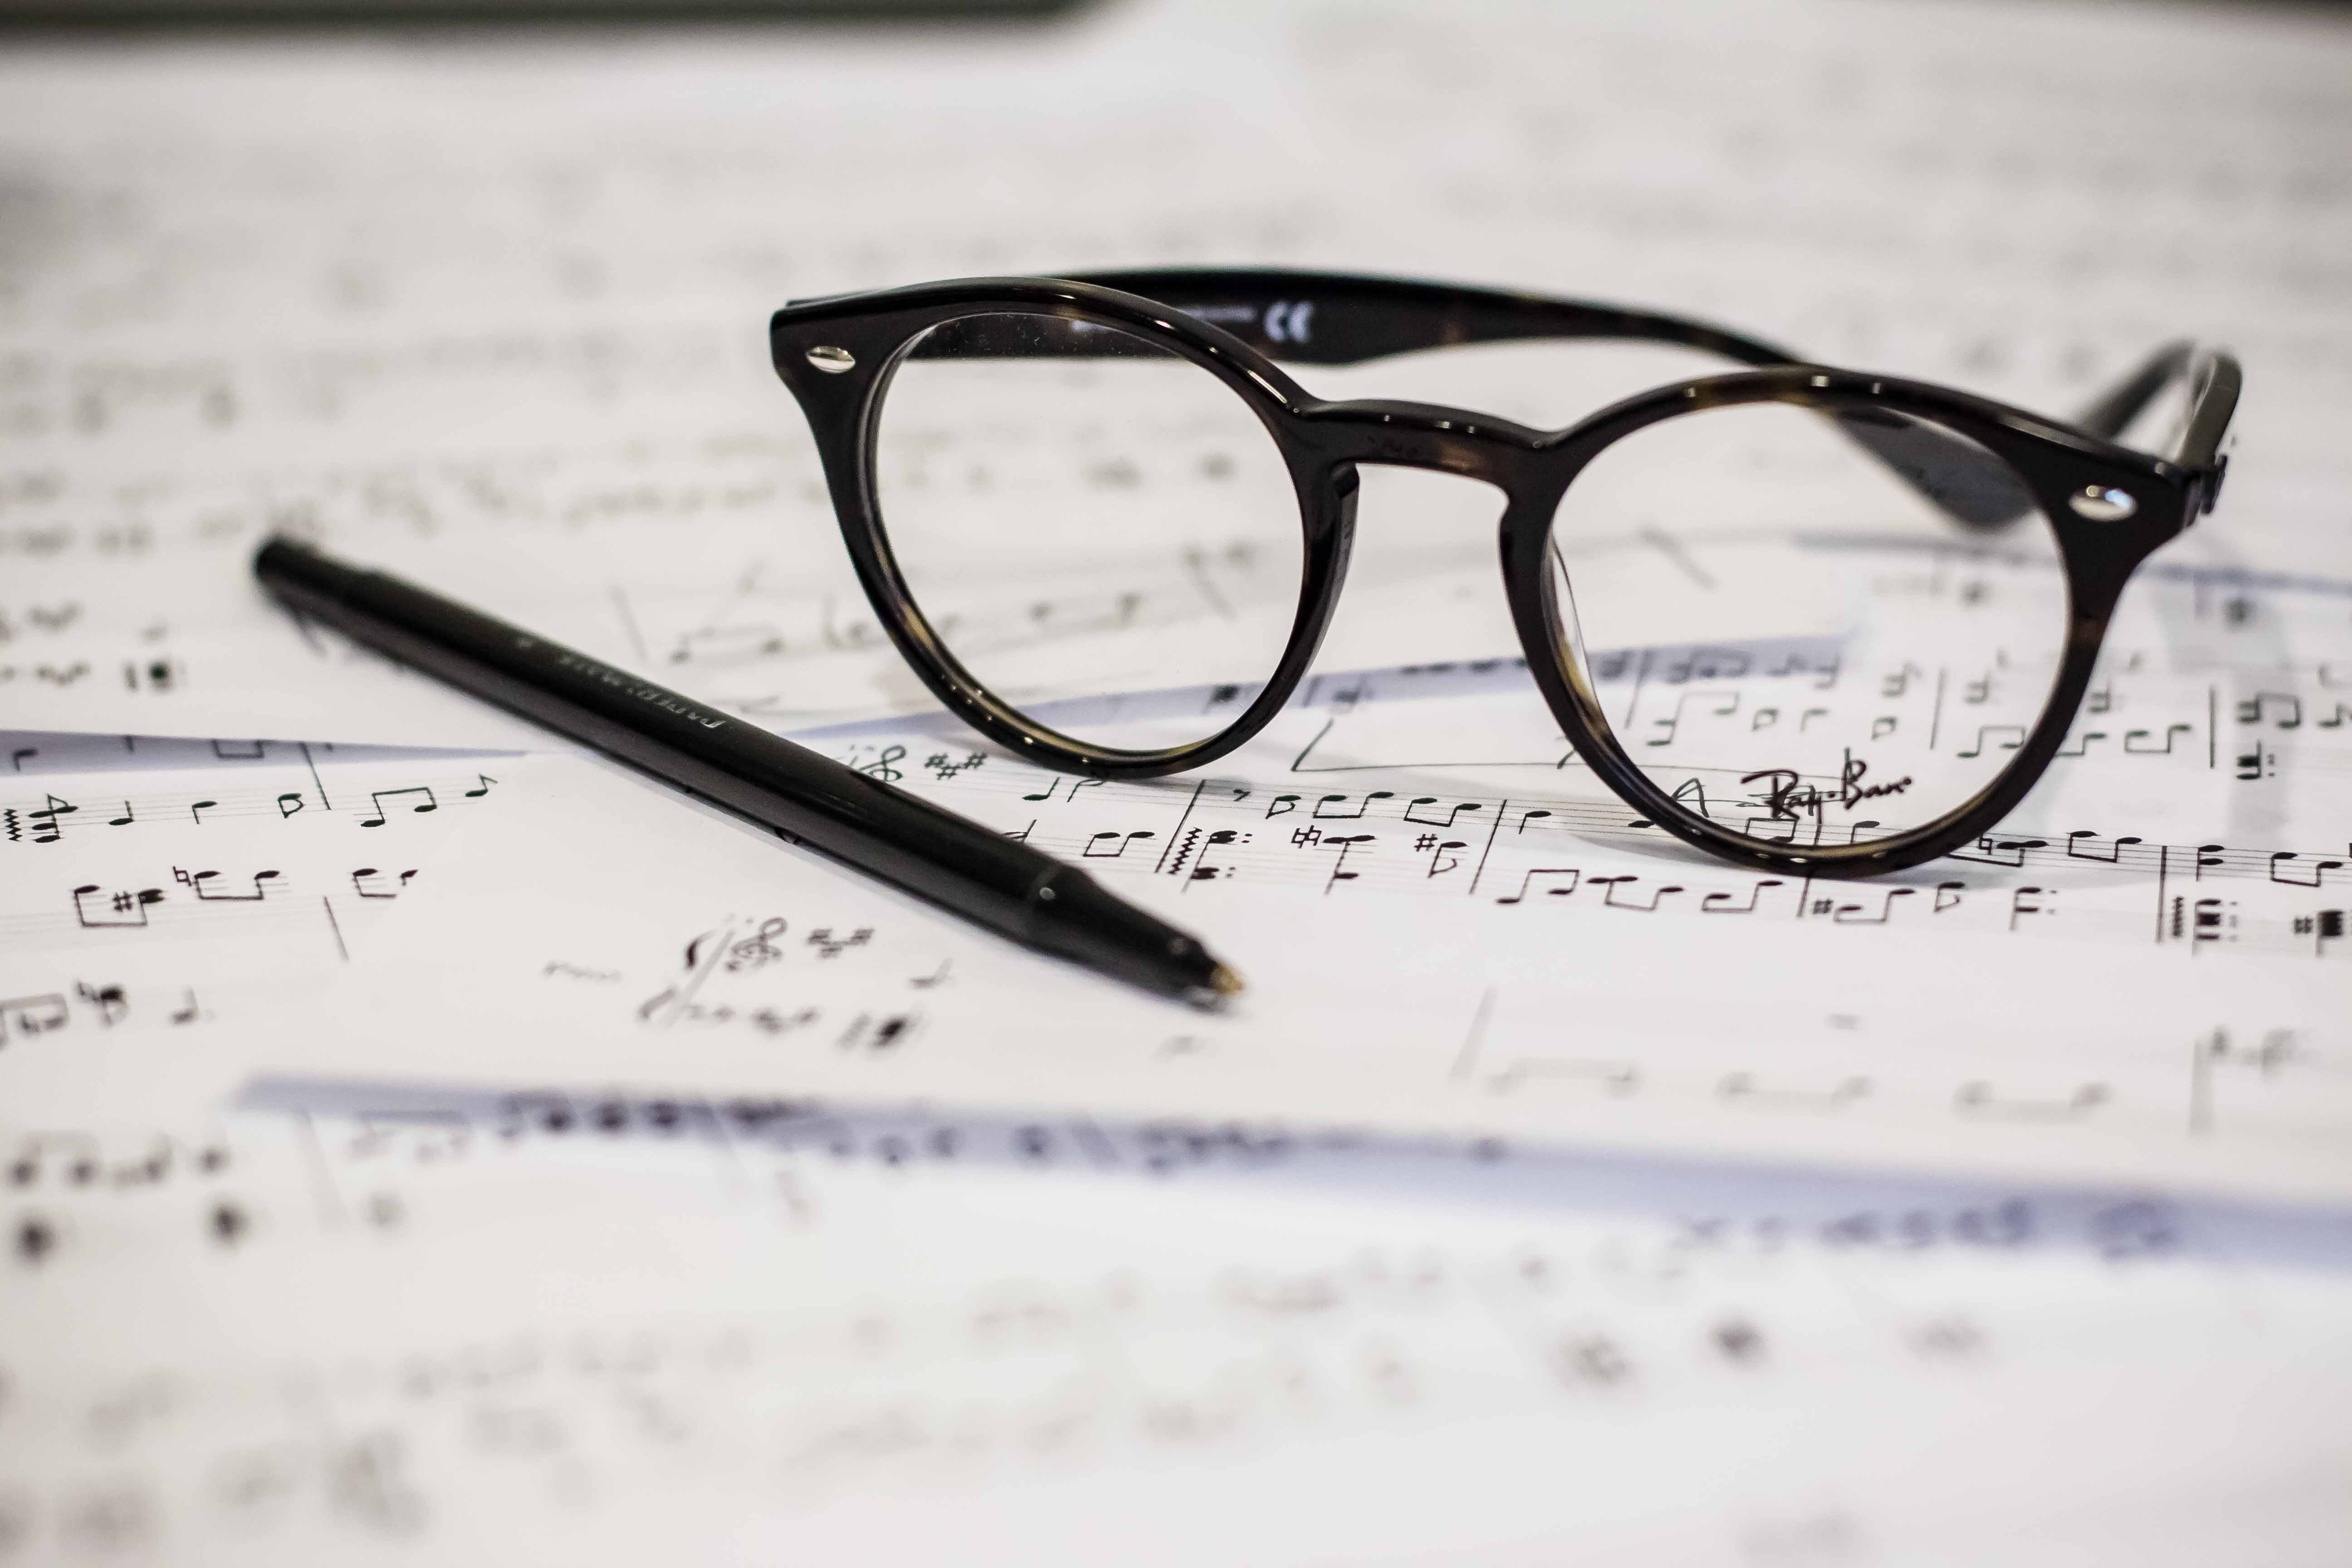 Black reading glasses and pen resting on sheet music